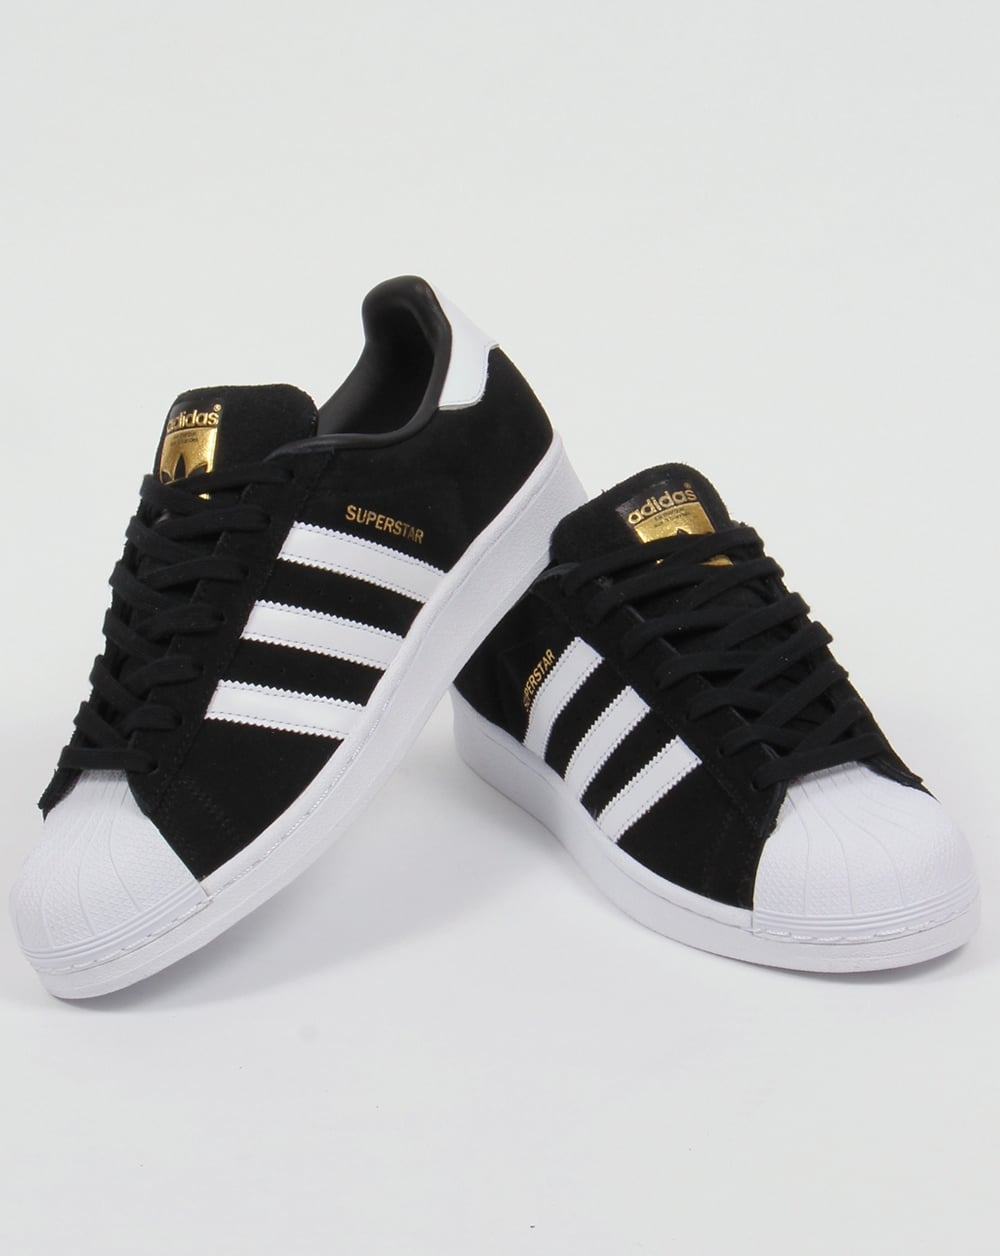 Adidas Superstar Original Black And White